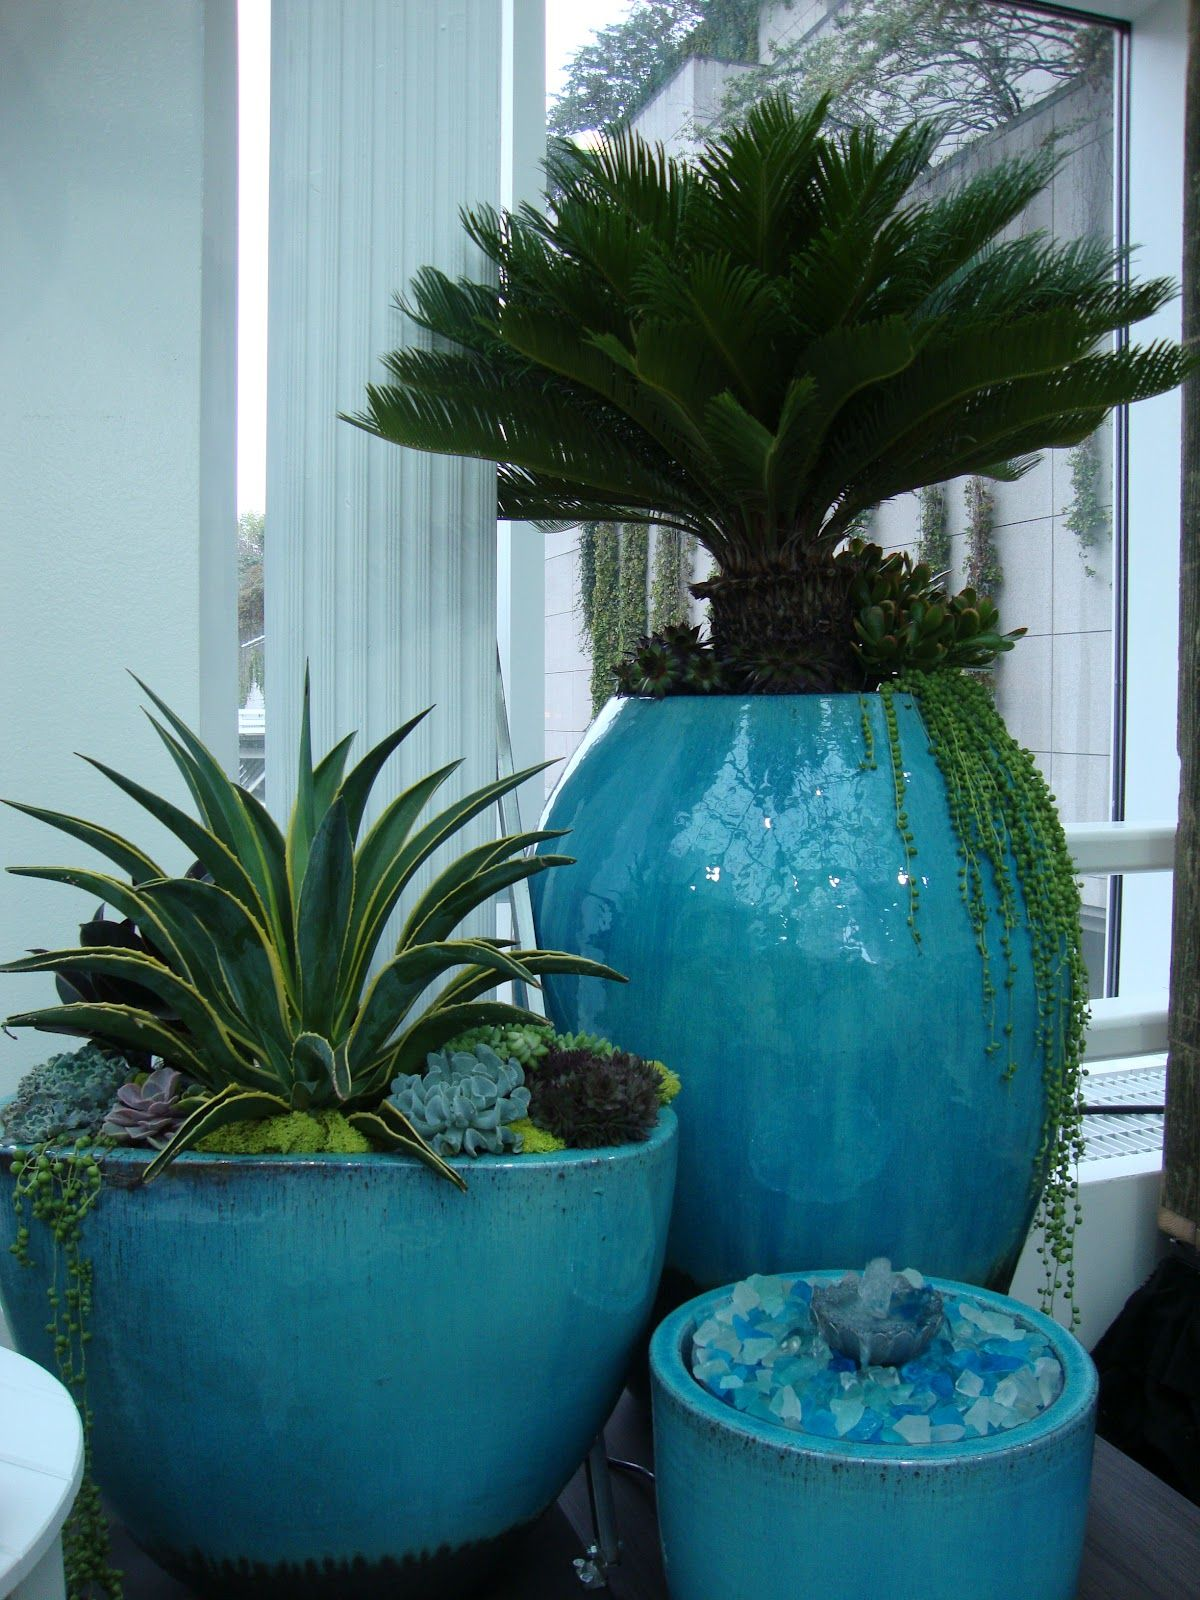 Tuquoise Glazed P*T With Succulents Sago Palm Container 400 x 300